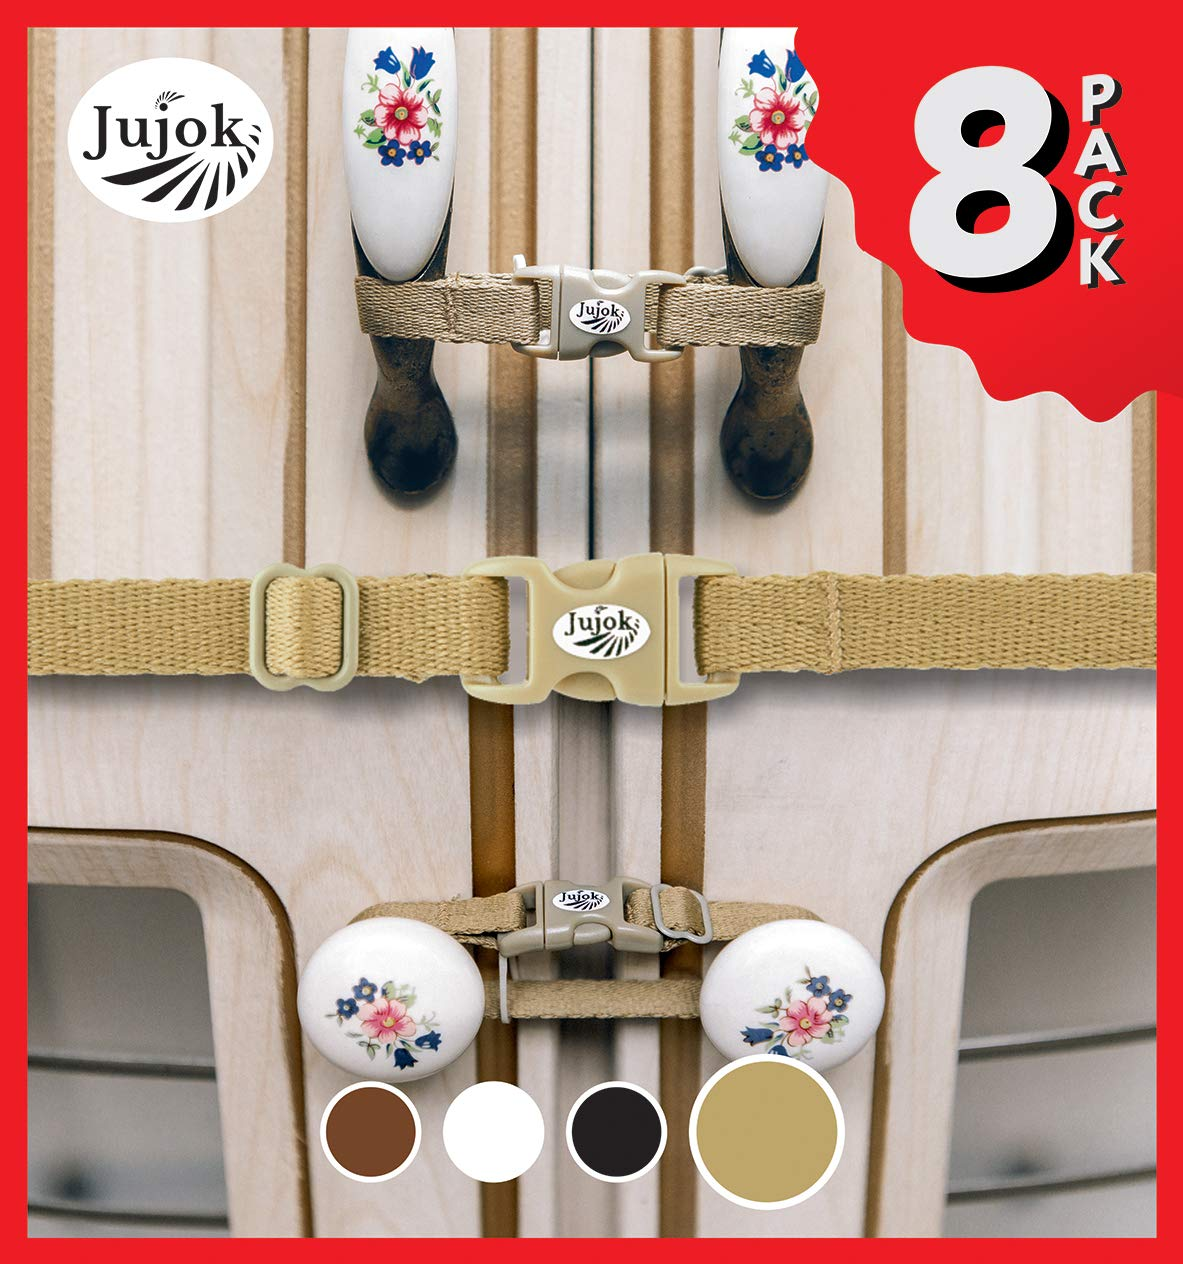 Jujok Child Safety Cabinet Locks (Gold Beige) J81gl